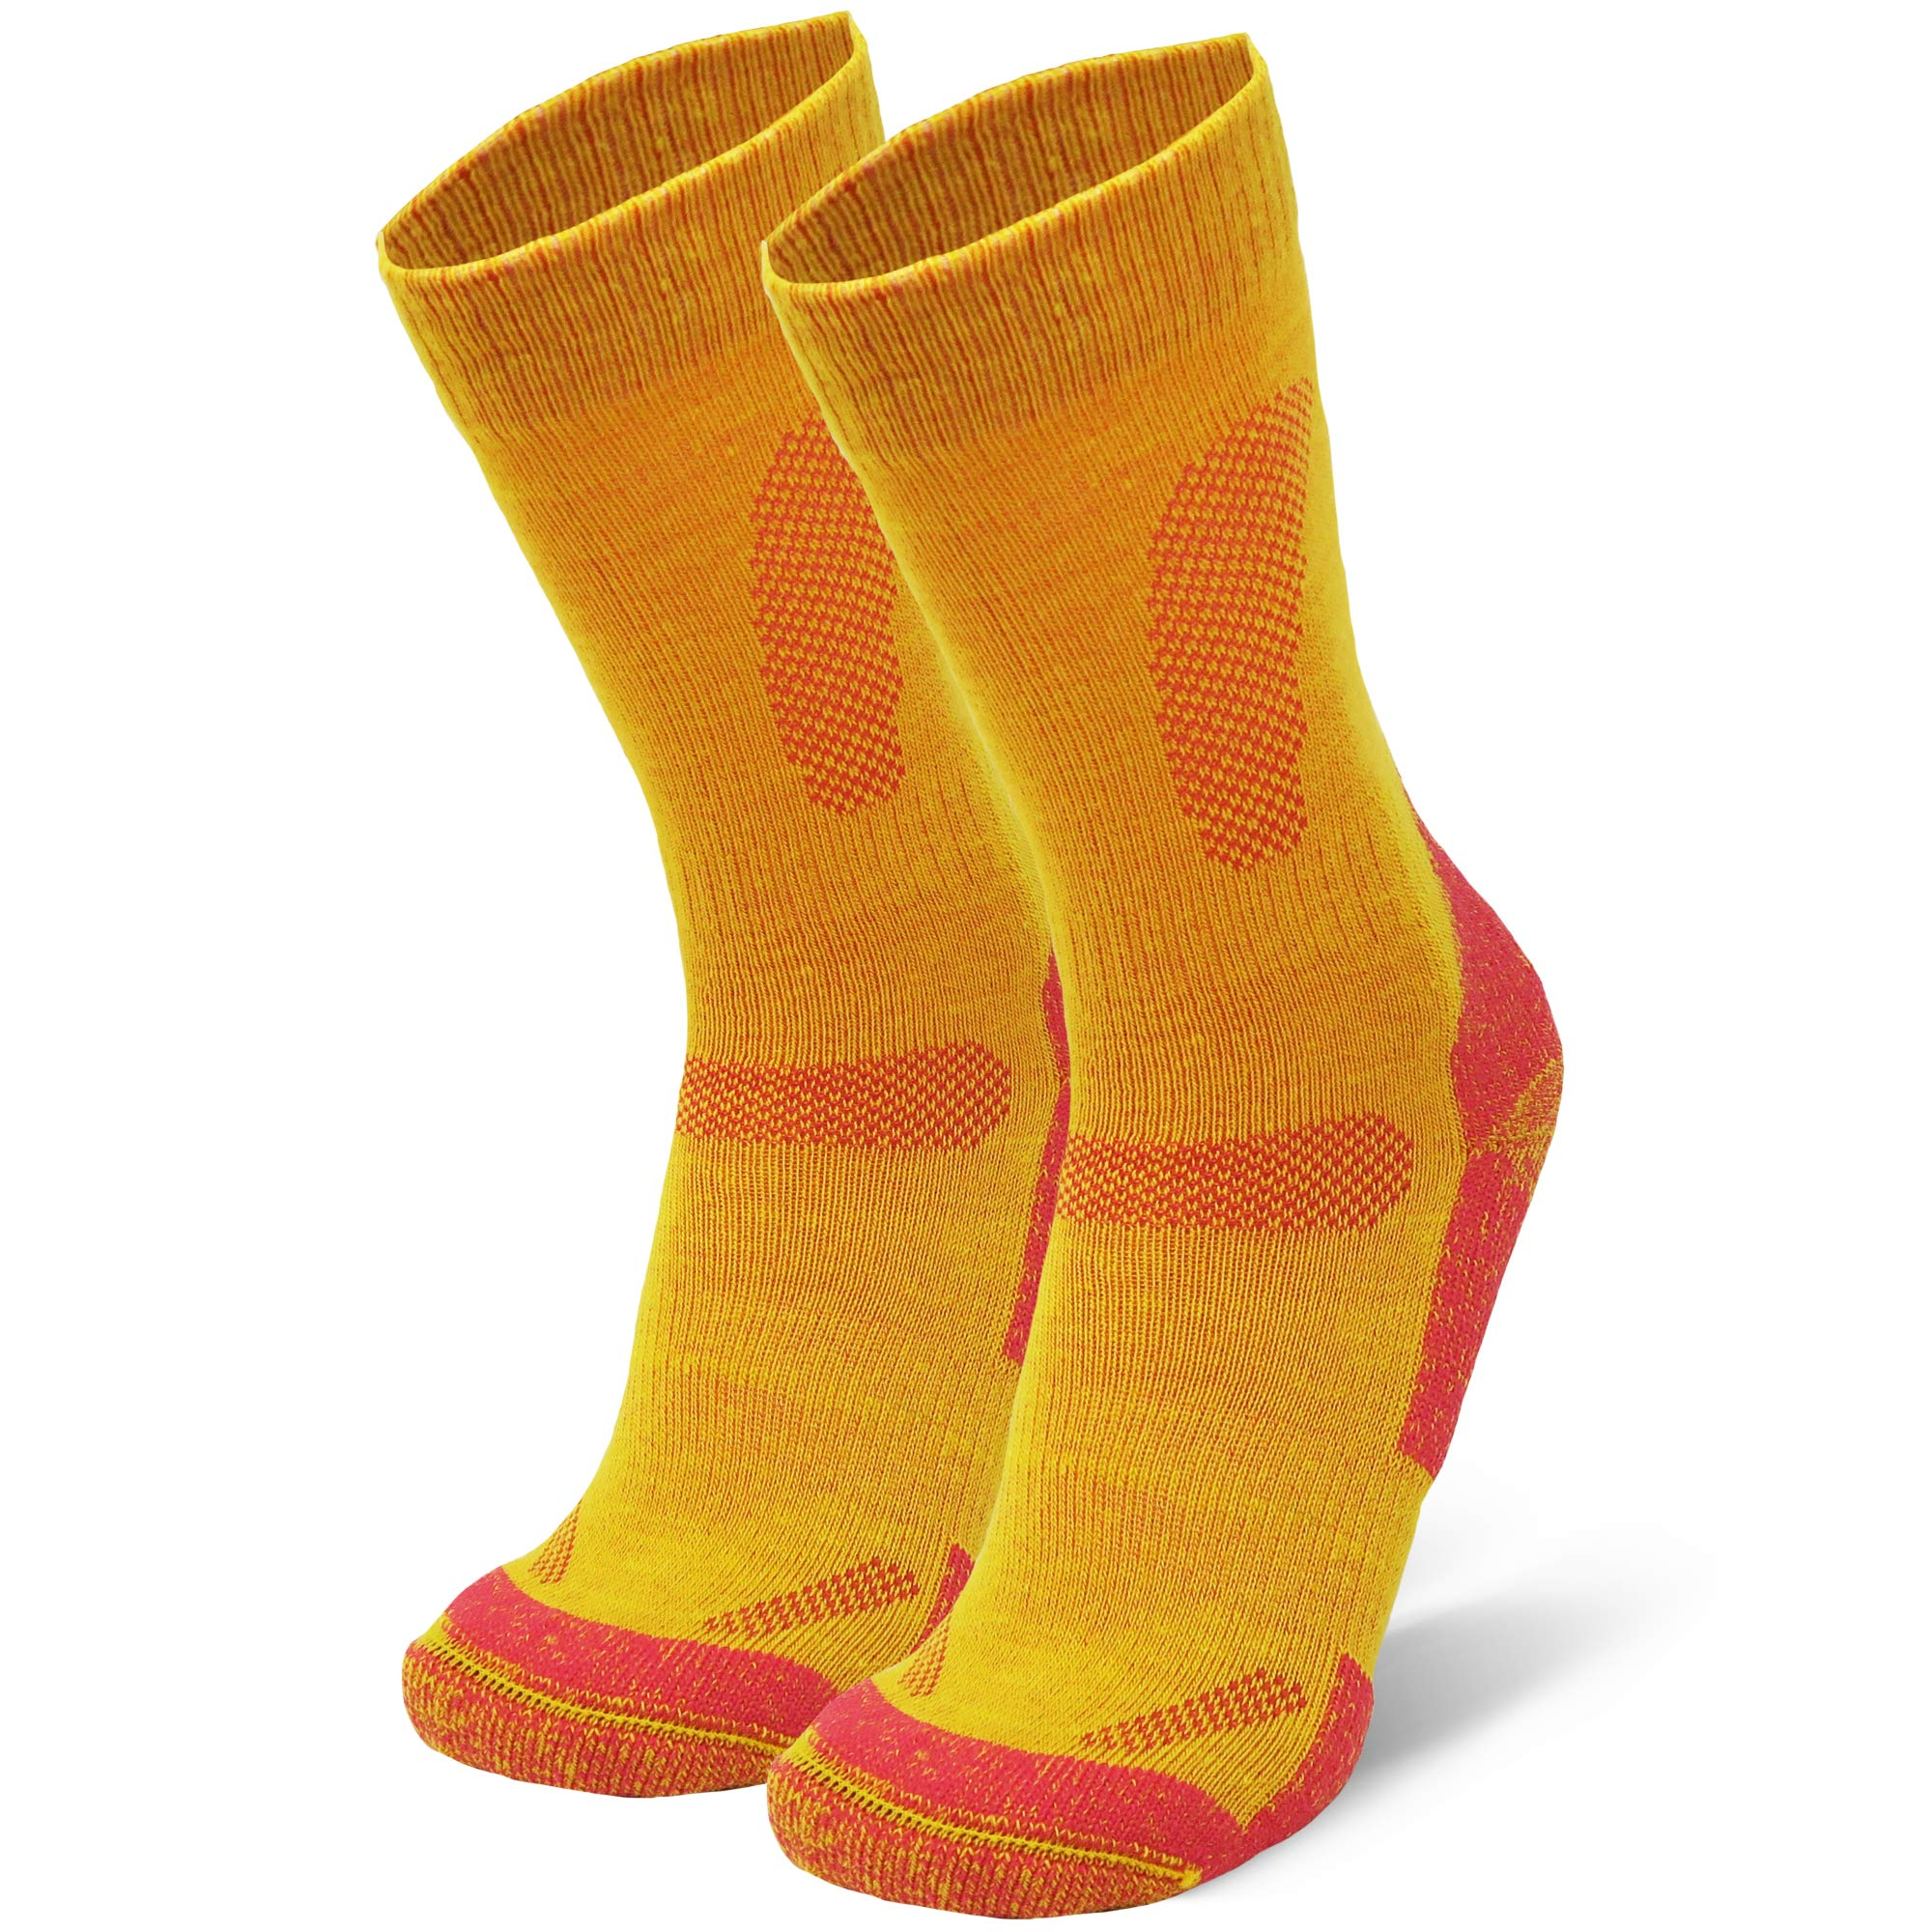 DANISH ENDURANCE Merino Wool Hiking & Trekking Socks (Yellow 1 Pair, US Women 8-10 // US Men 6.5-8.5) by DANISH ENDURANCE